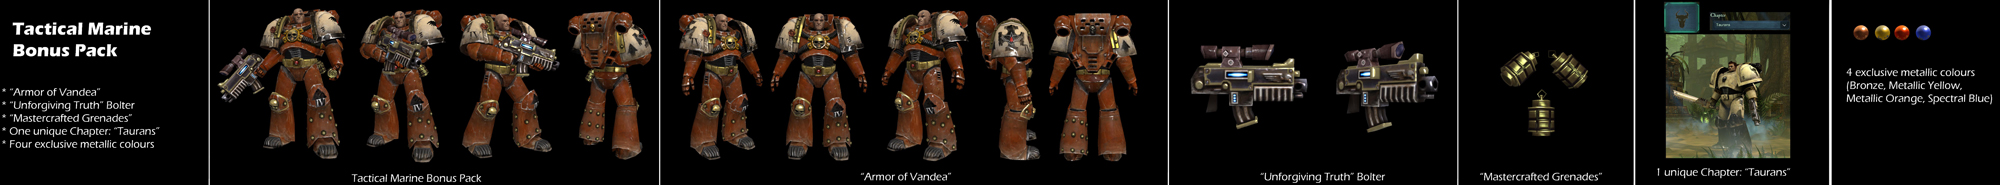 http://g-ecx.images-amazon.com/images/G/02/uk-videogames/2009/preorder/Sternguard.jpg